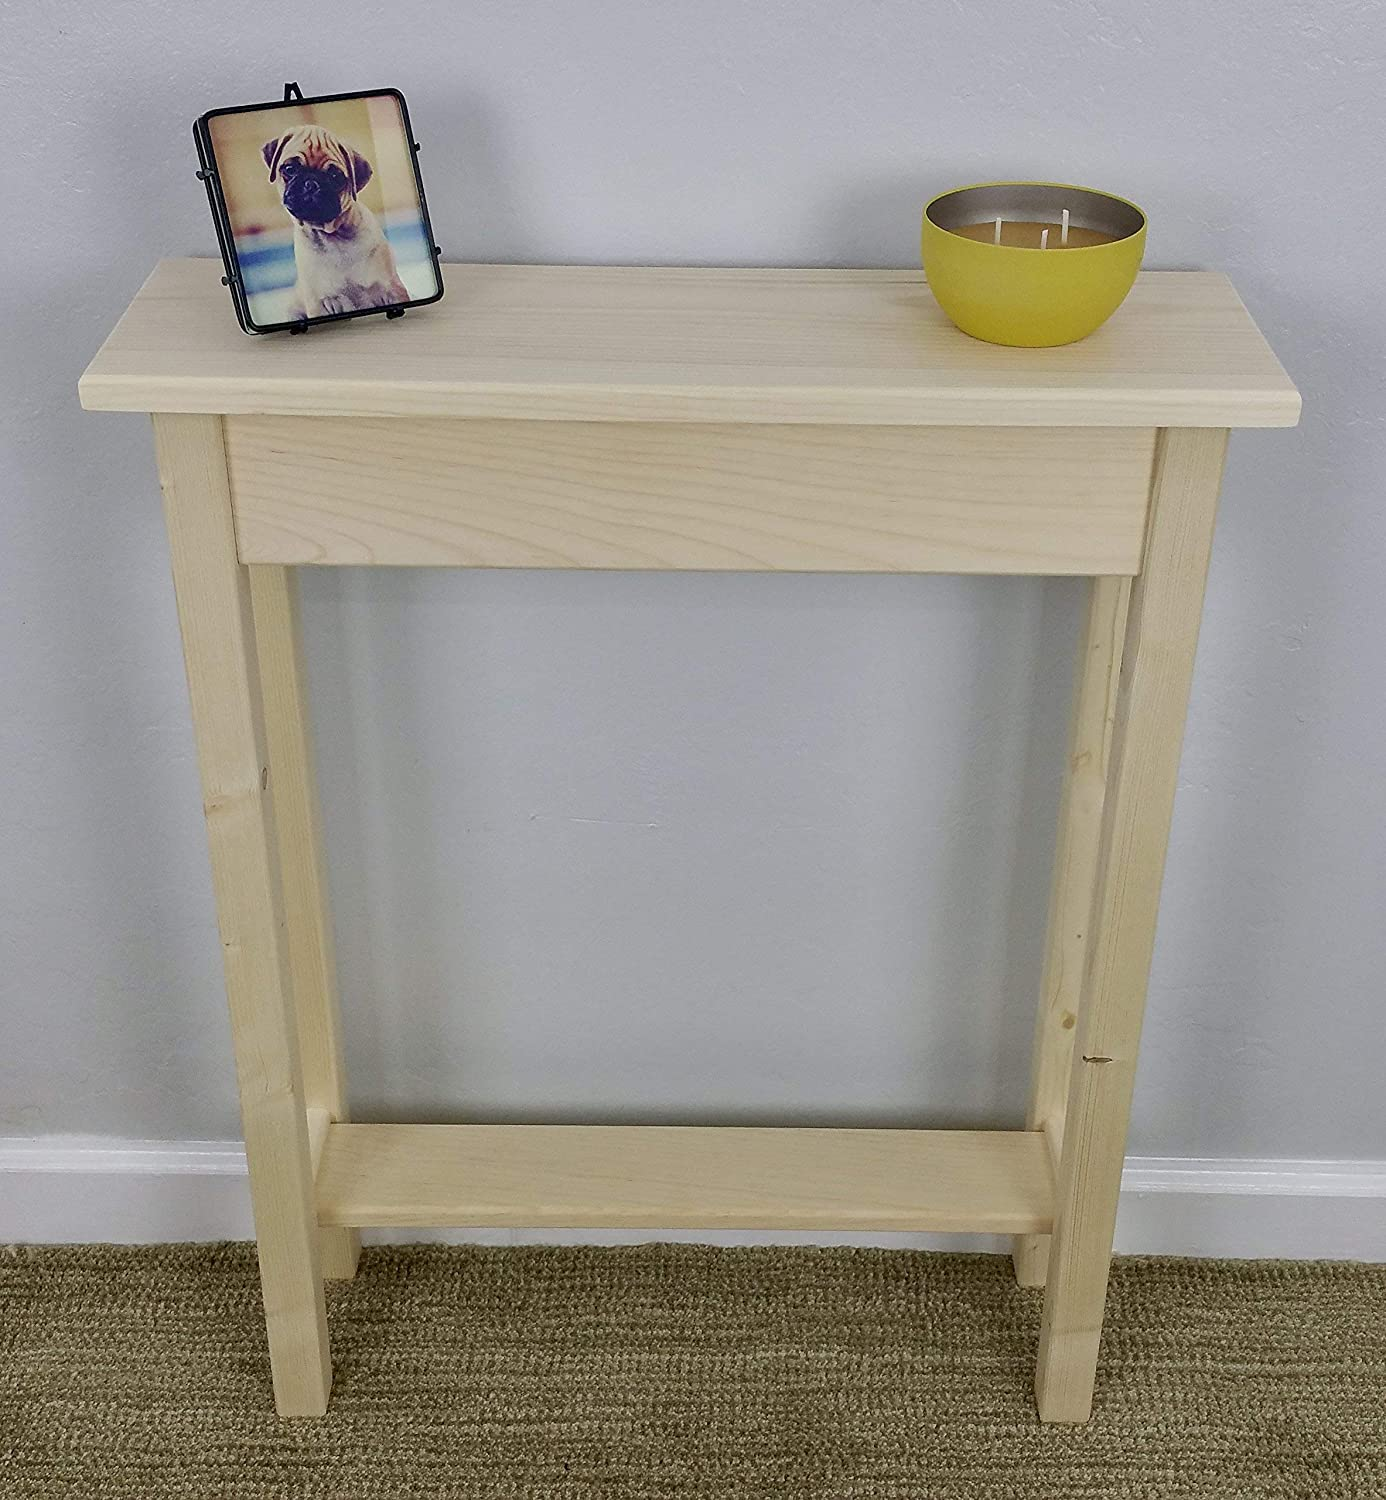 Marvelous 24 Unfinished Pine Narrow Wall Foyer Sofa Console Hall Table With Bottom Shelf Andrewgaddart Wooden Chair Designs For Living Room Andrewgaddartcom